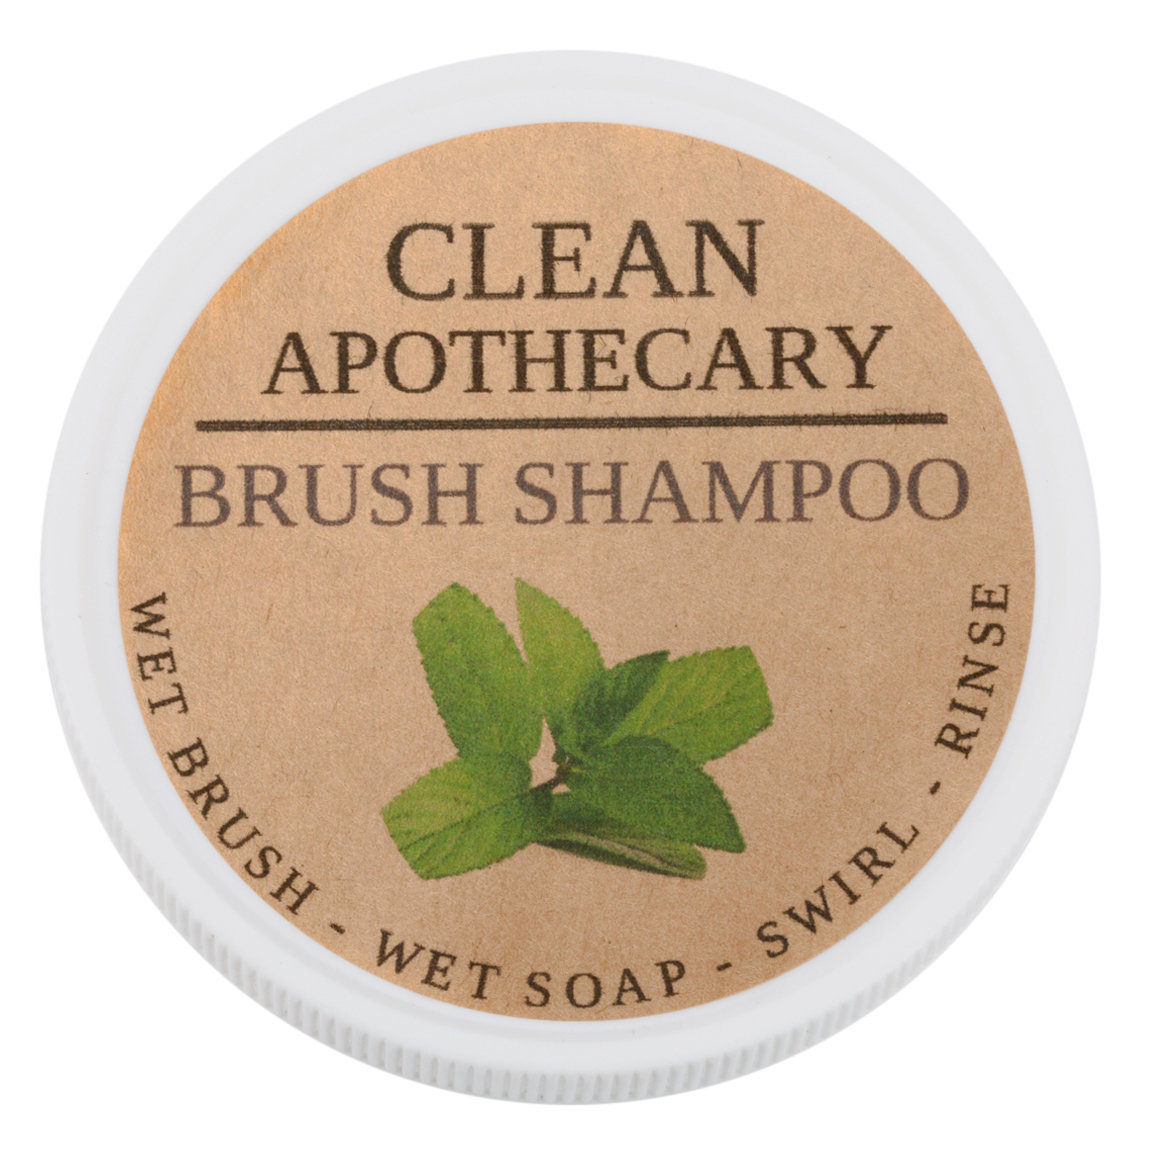 Clean Apothecary Brush Shampoo Spearmint product smear.